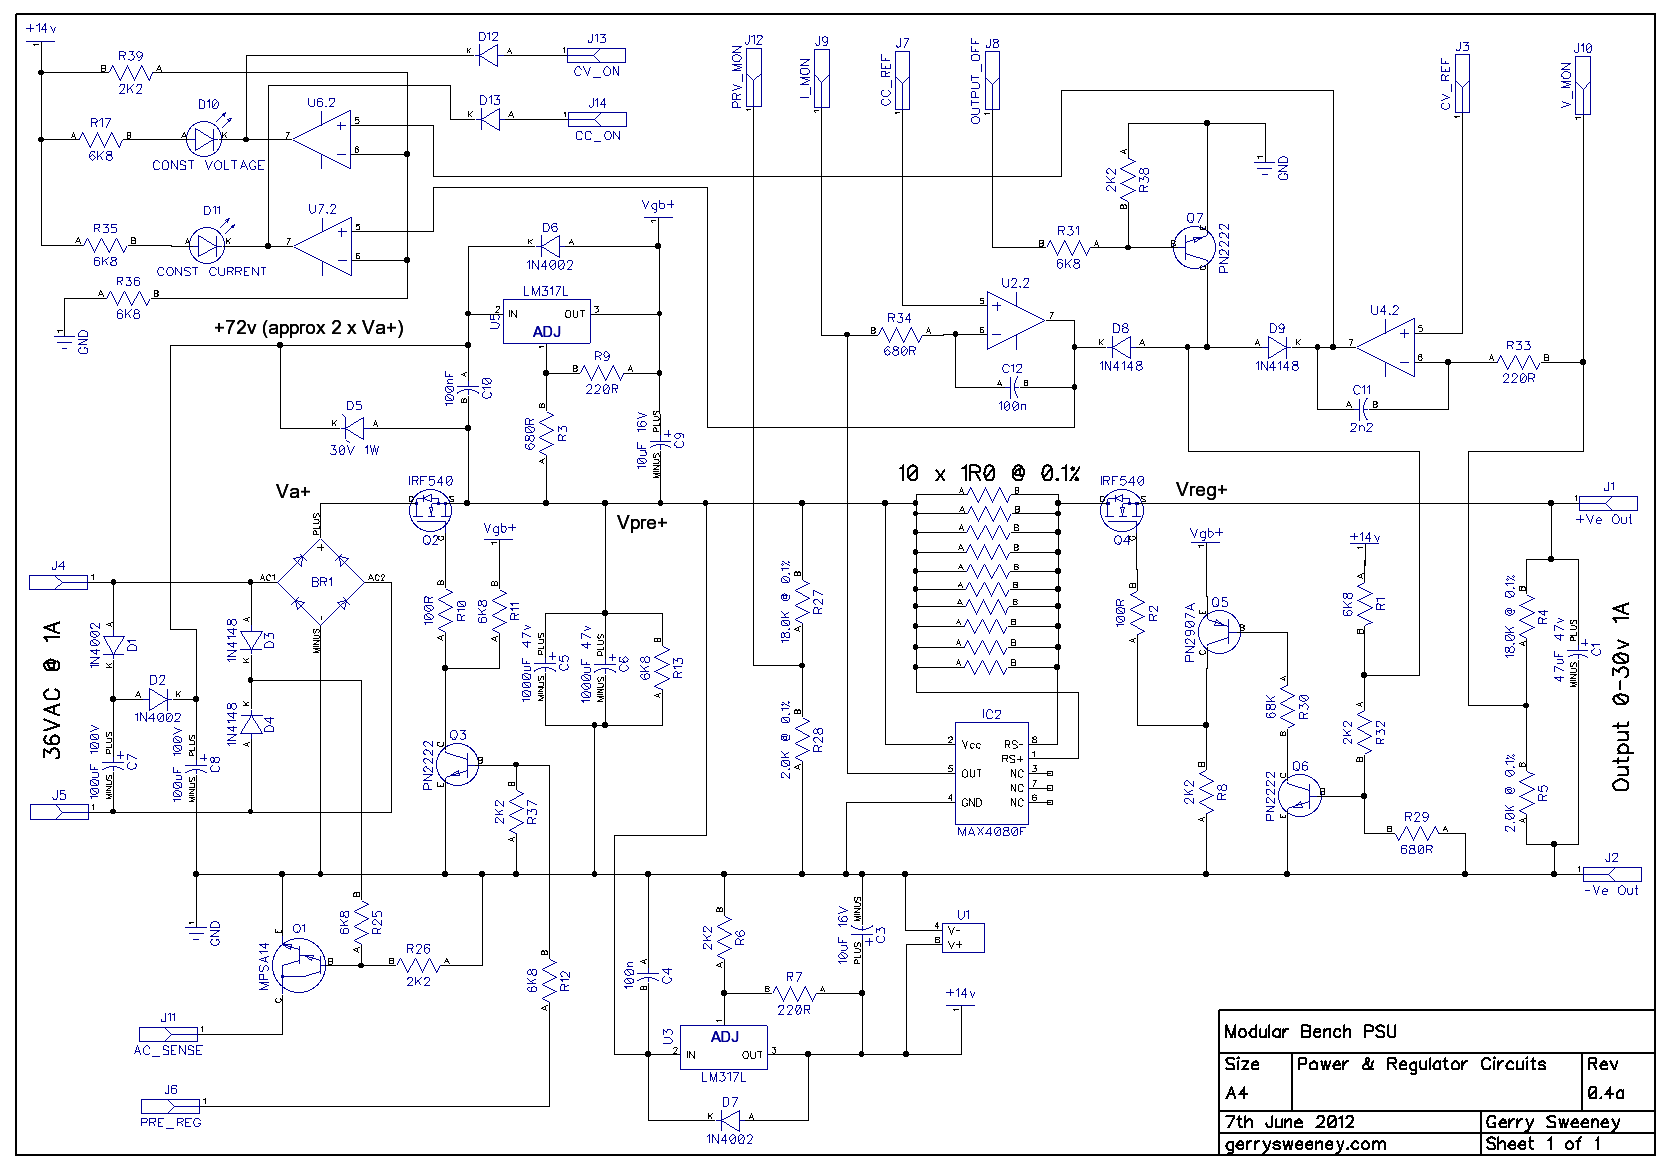 PSU Schematic Version 0.4a